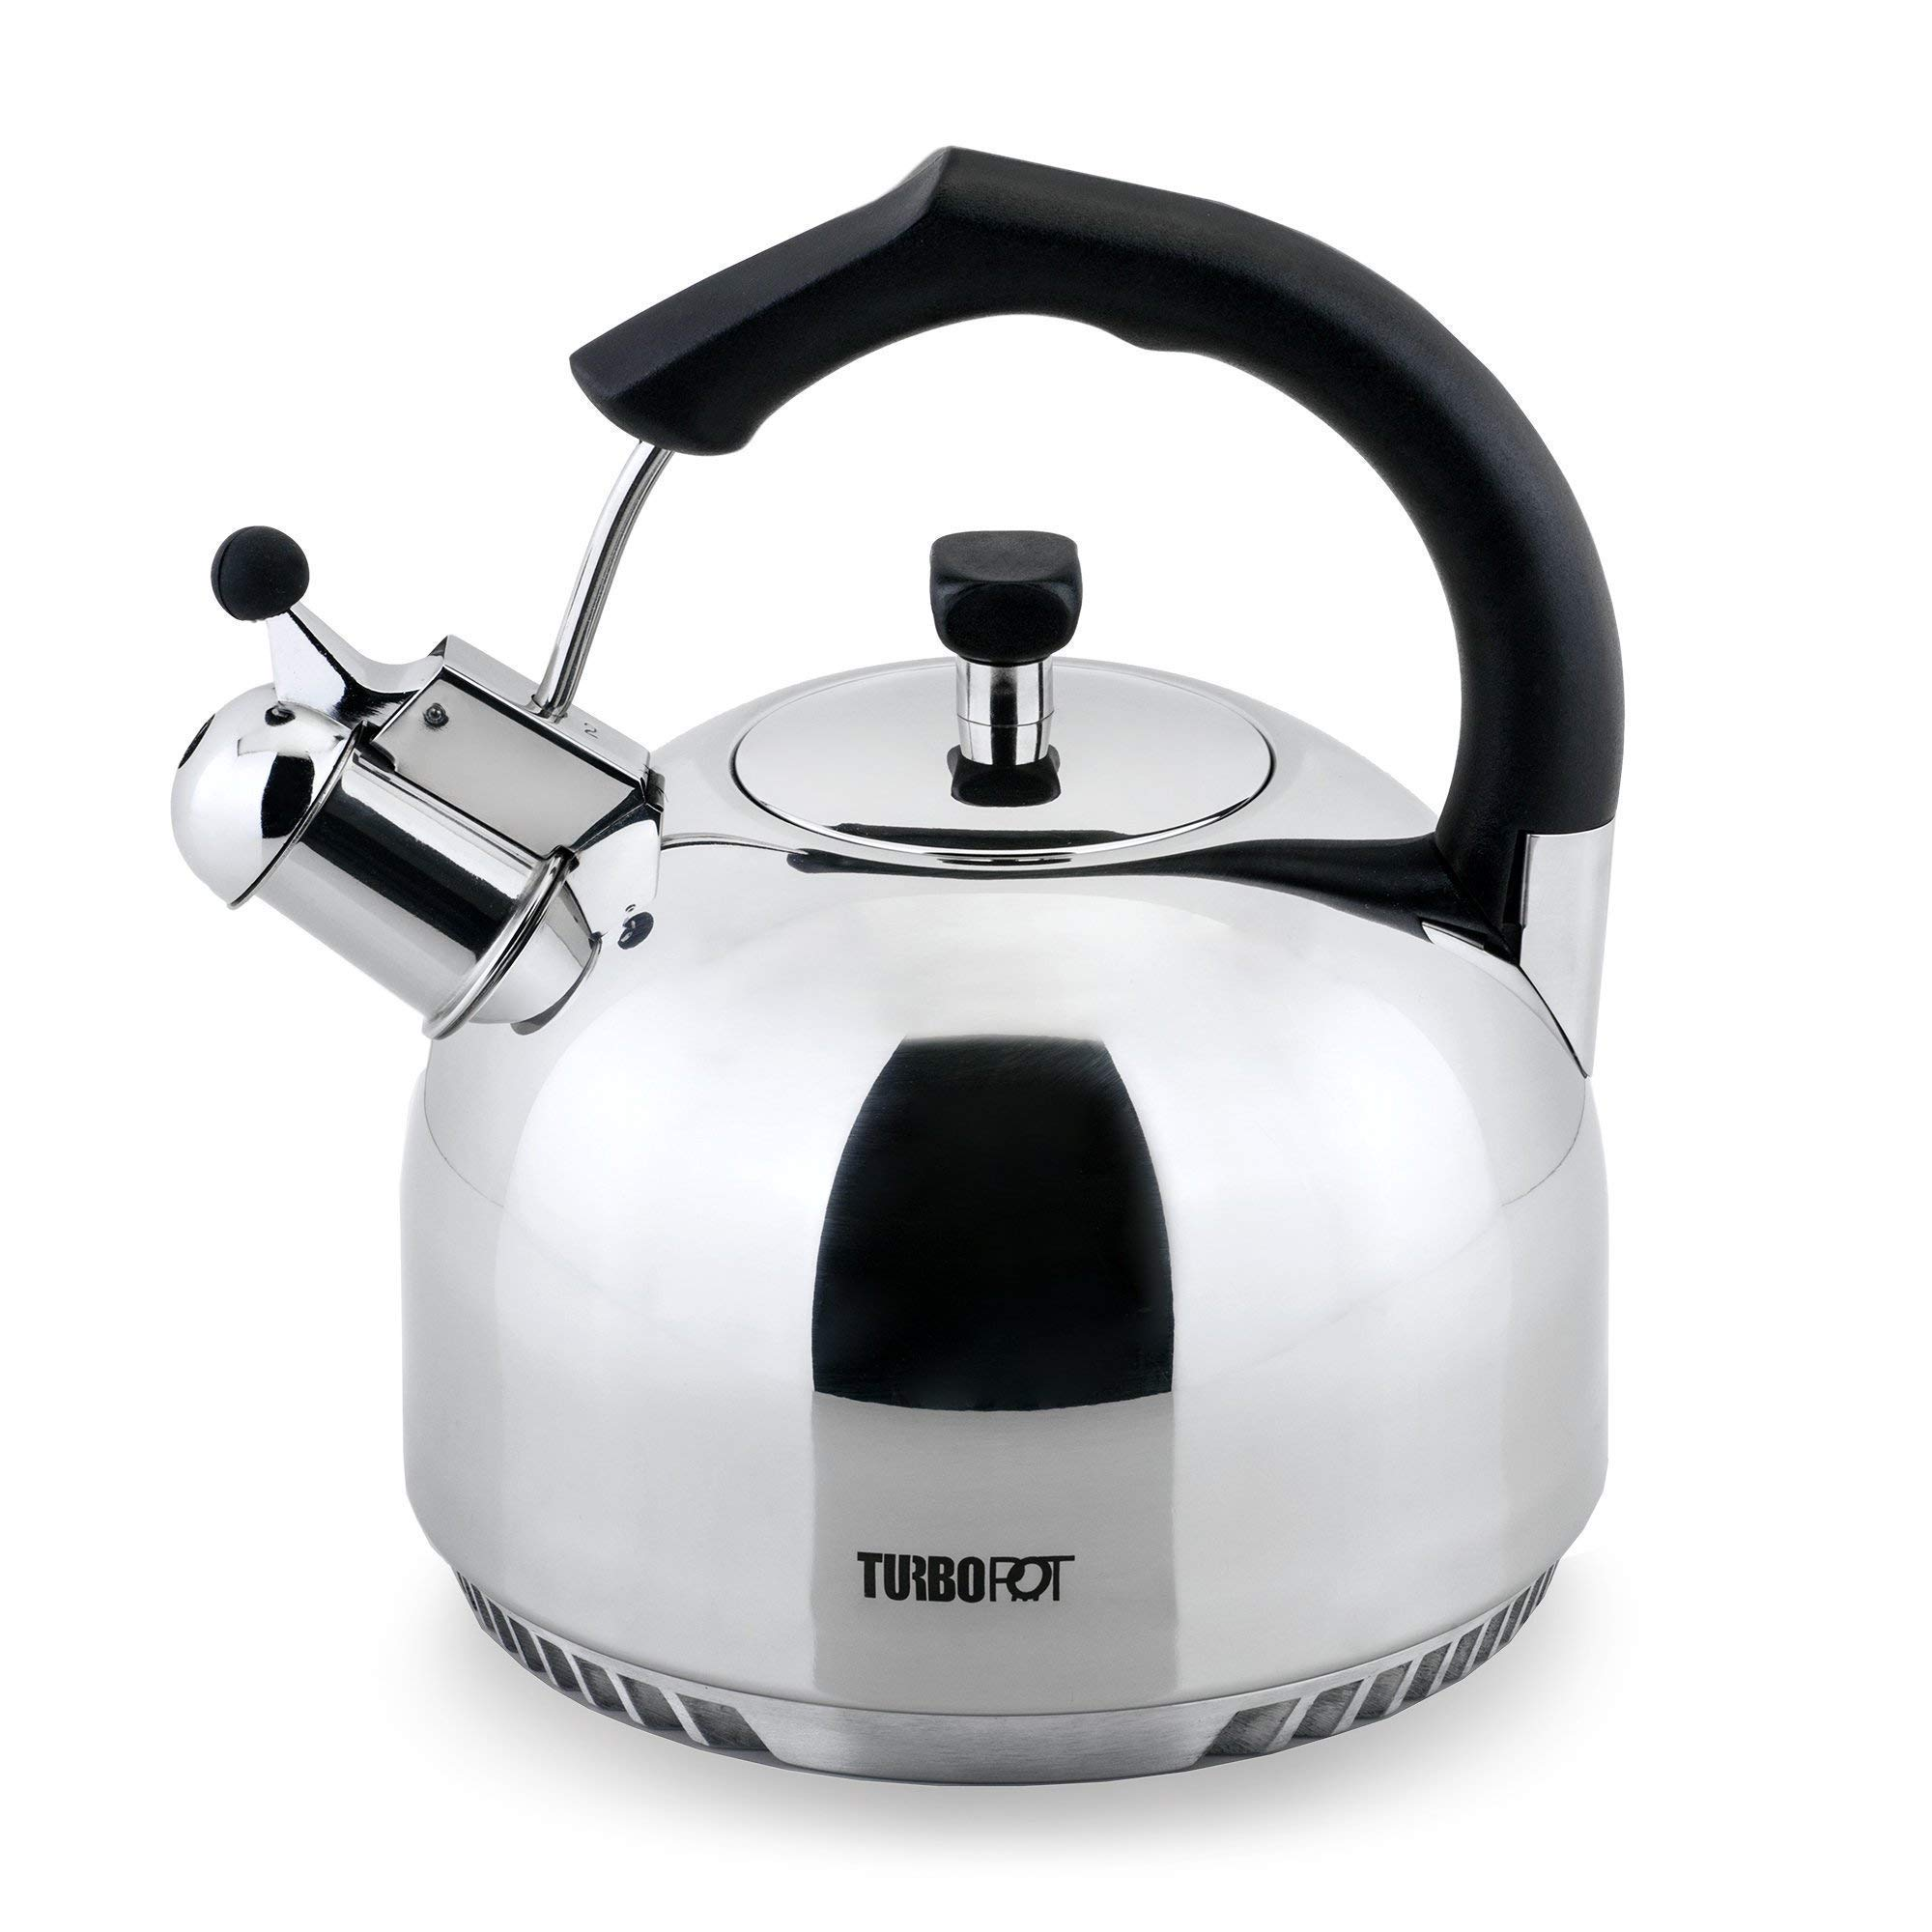 FreshAir Stainless Steel 2.5 Qt. Tea Kettle by Turbo Pot-energy-efficient cookware for gas stove